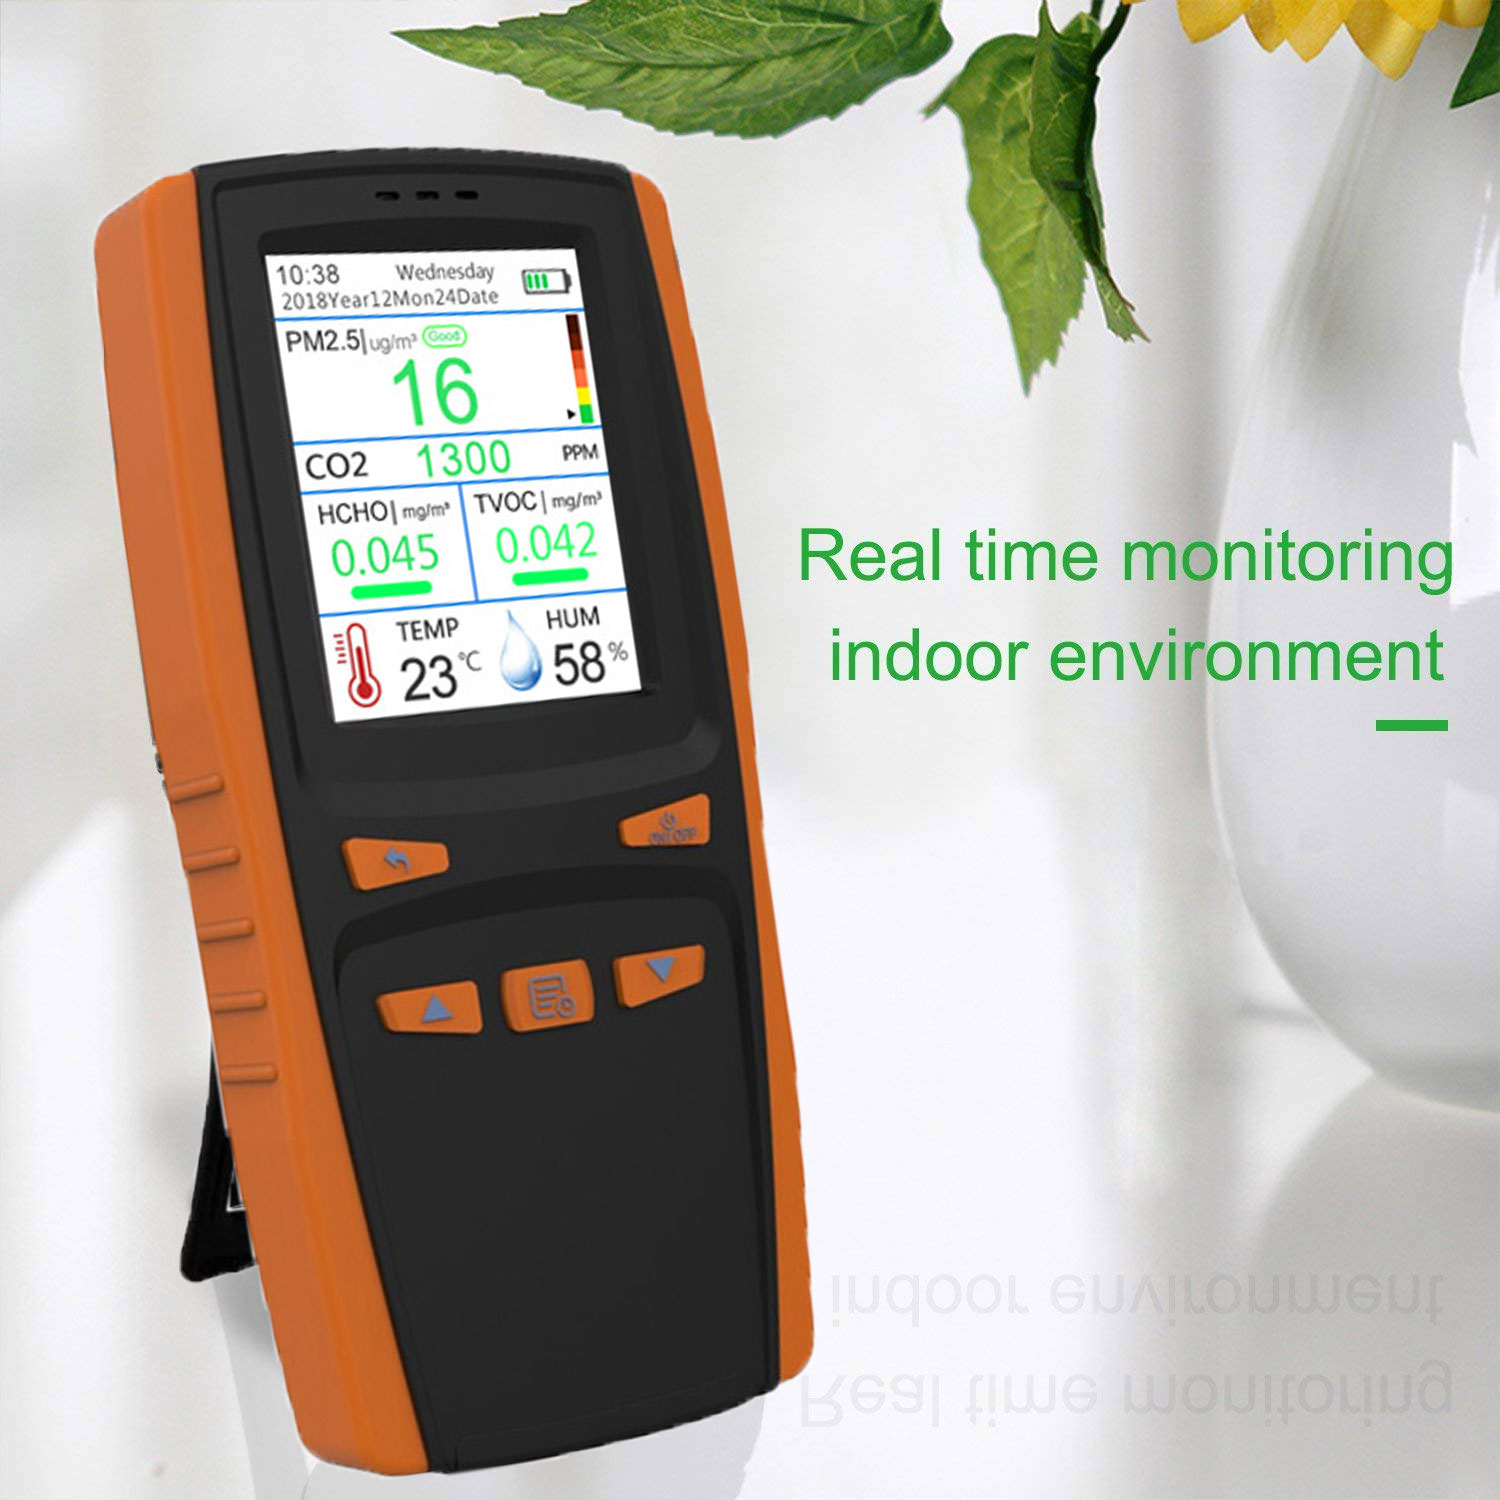 HANTECH Portable Air Quality Pollution Monitor, 7 in 1 Indoor Formaldehyde Detector, Detect PM2.5 TVOC HCHO CO2 AQI Micron Dust